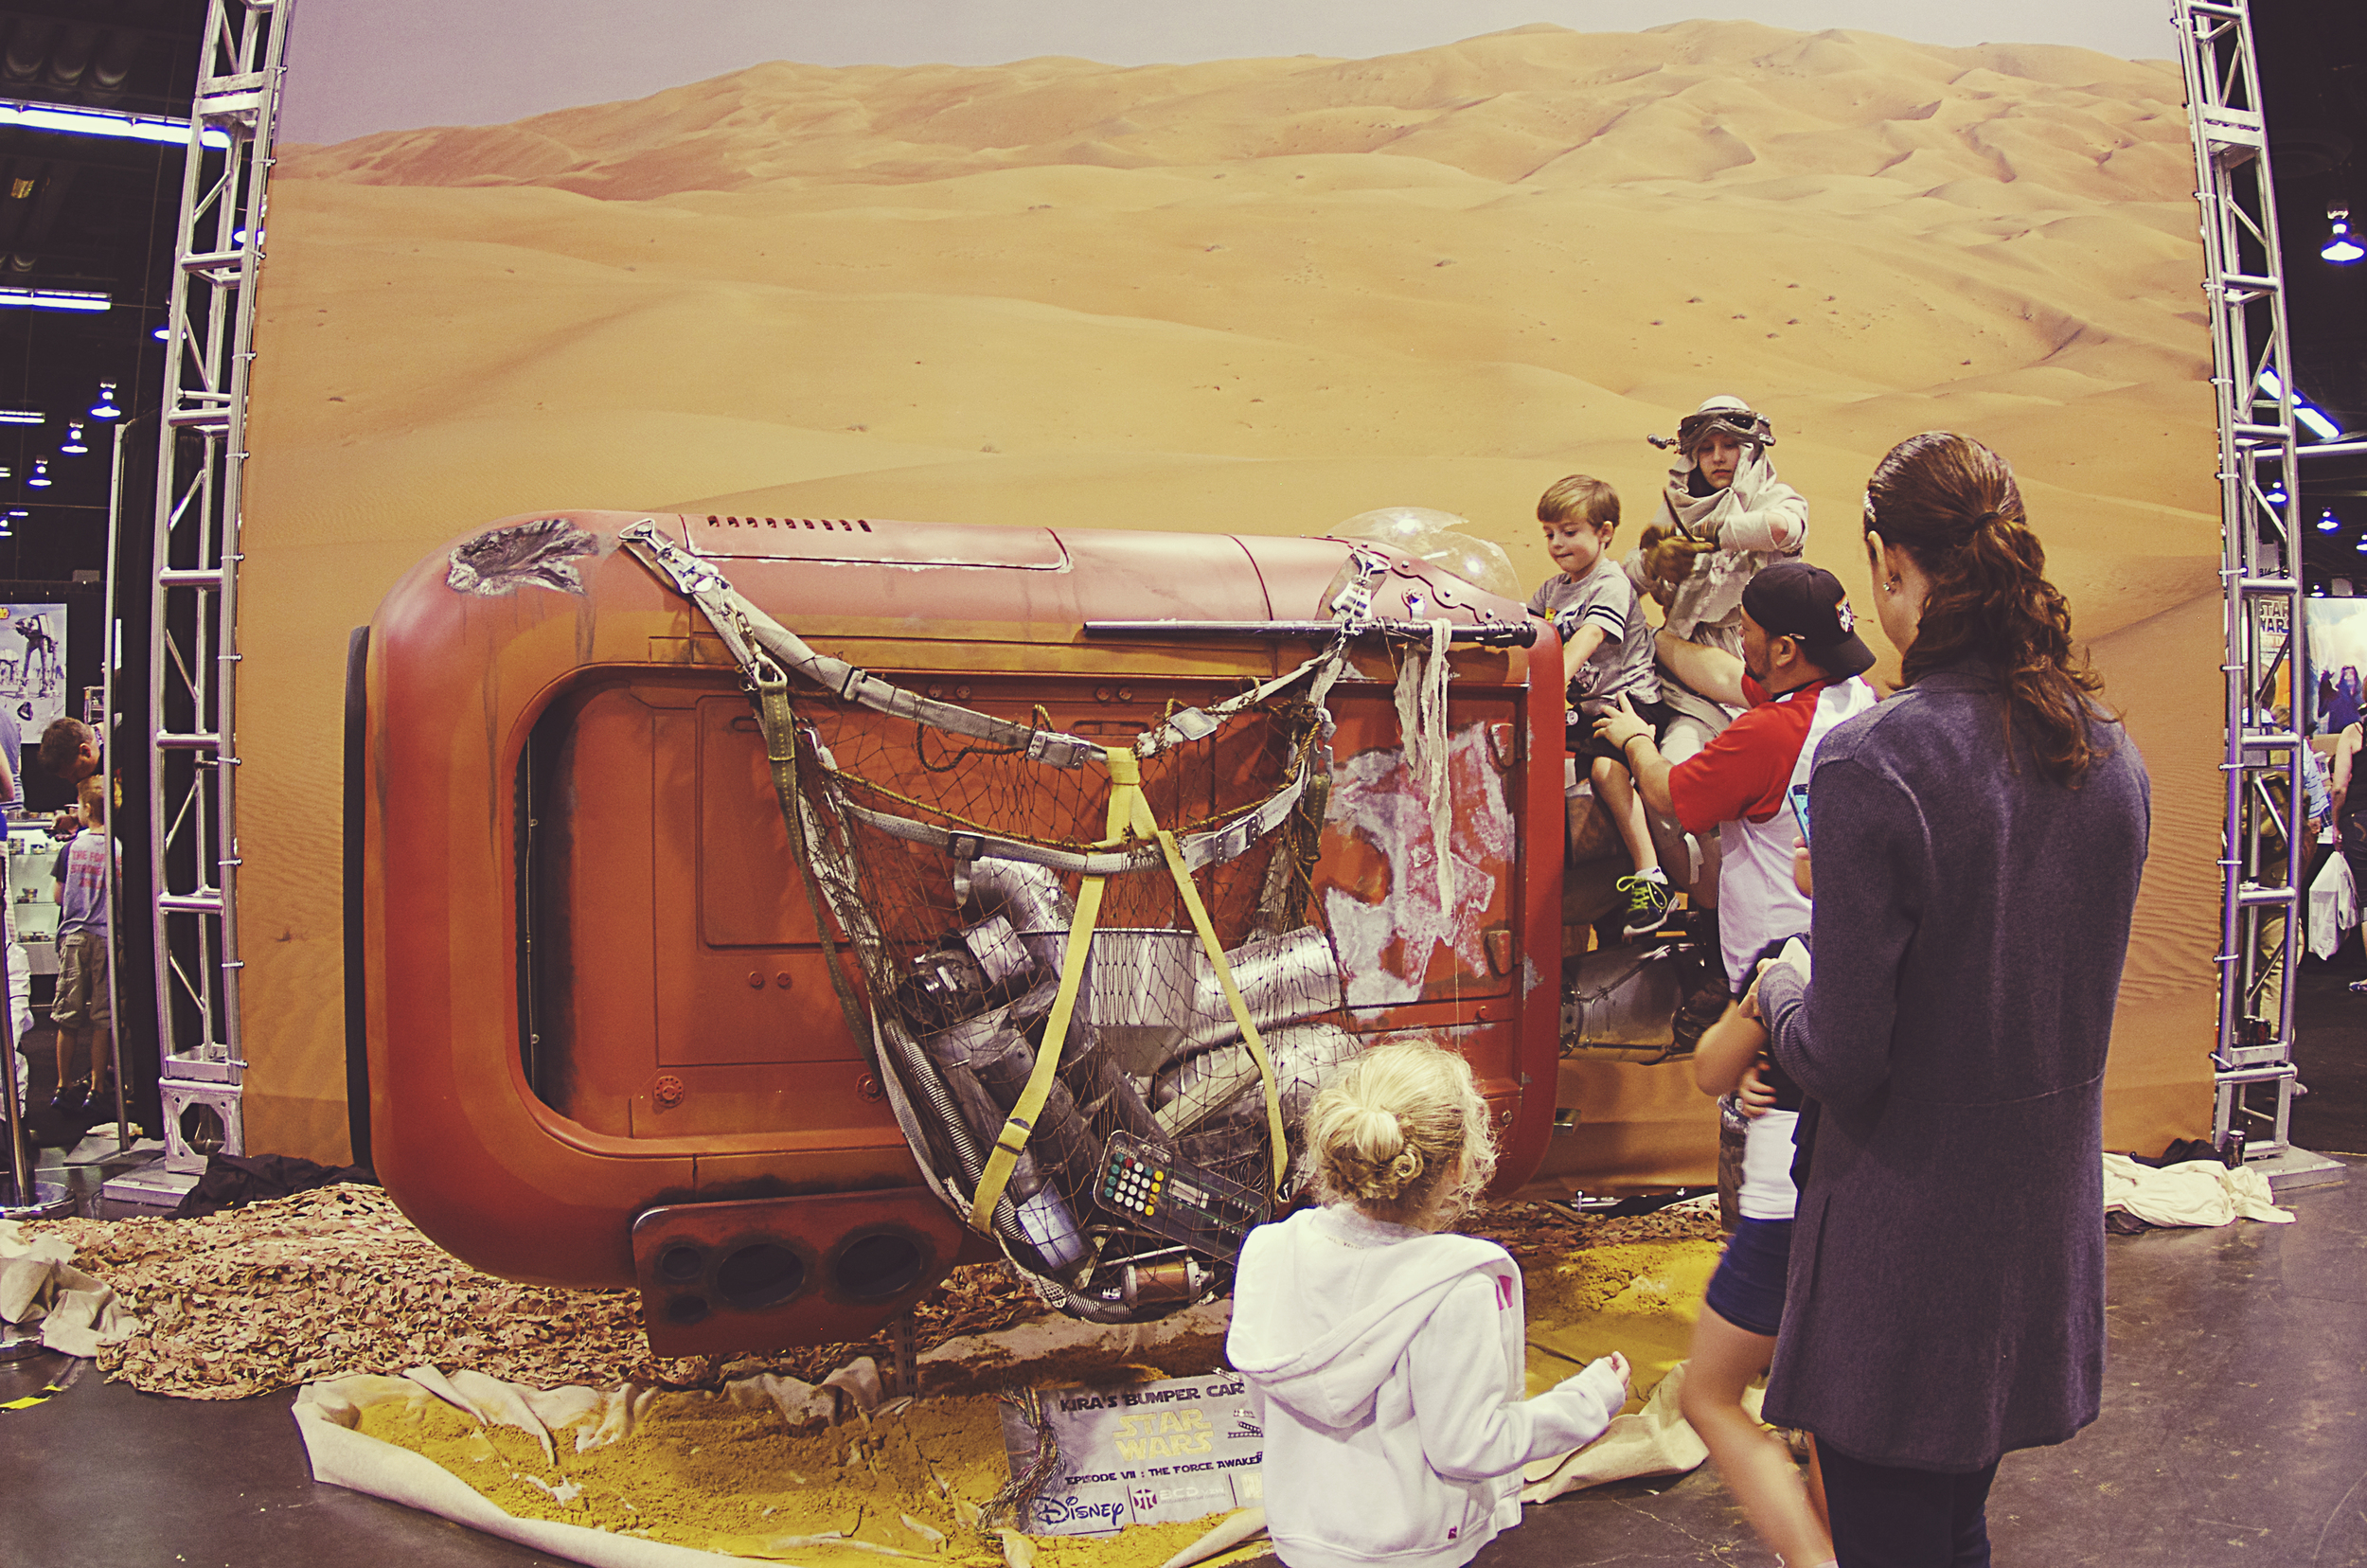 Checking out Rey's Dove chocolate bar speeder.